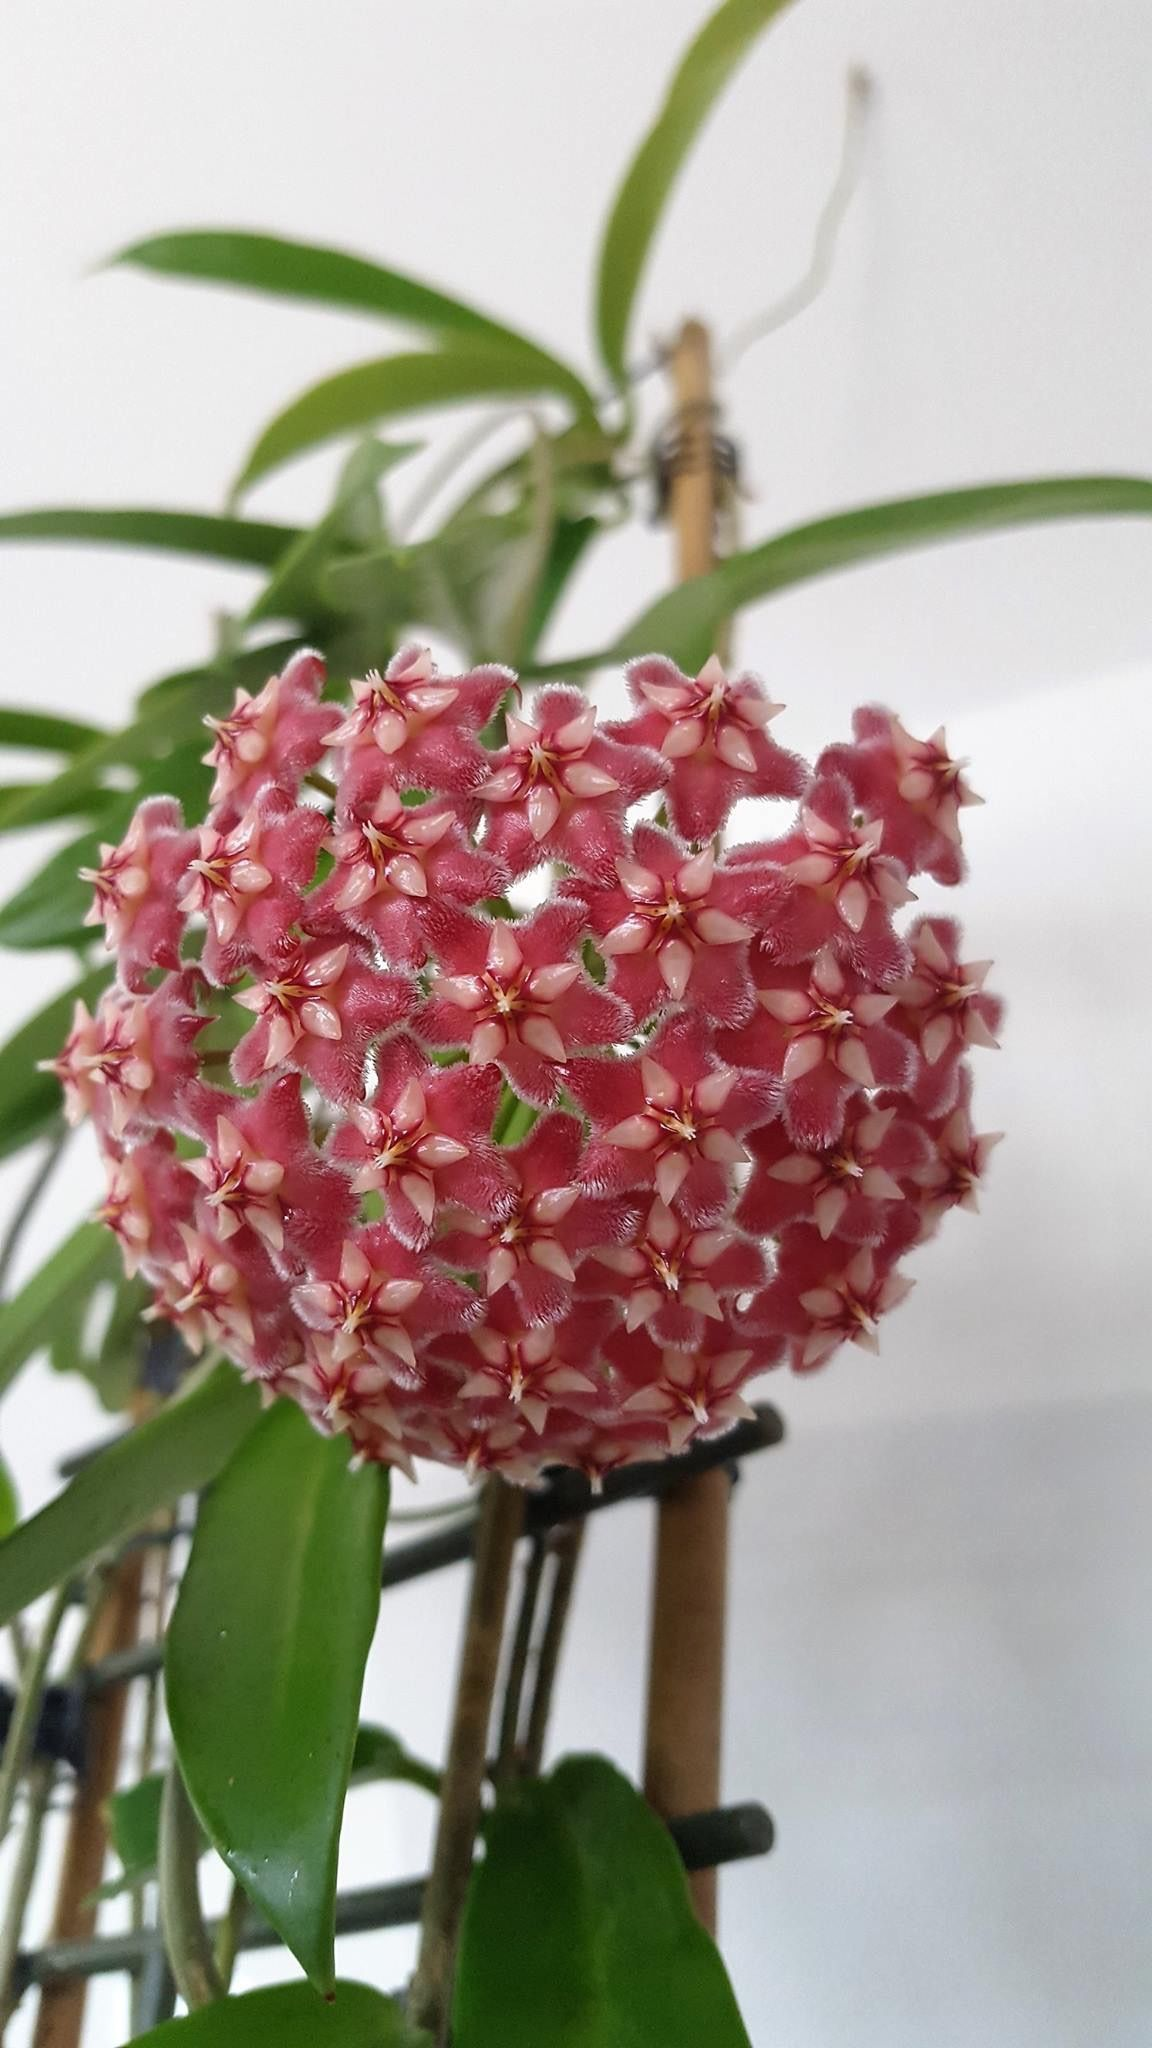 Hoya Pubicalyx Pink Dragon Flowers Again Last Night A Strong Scent